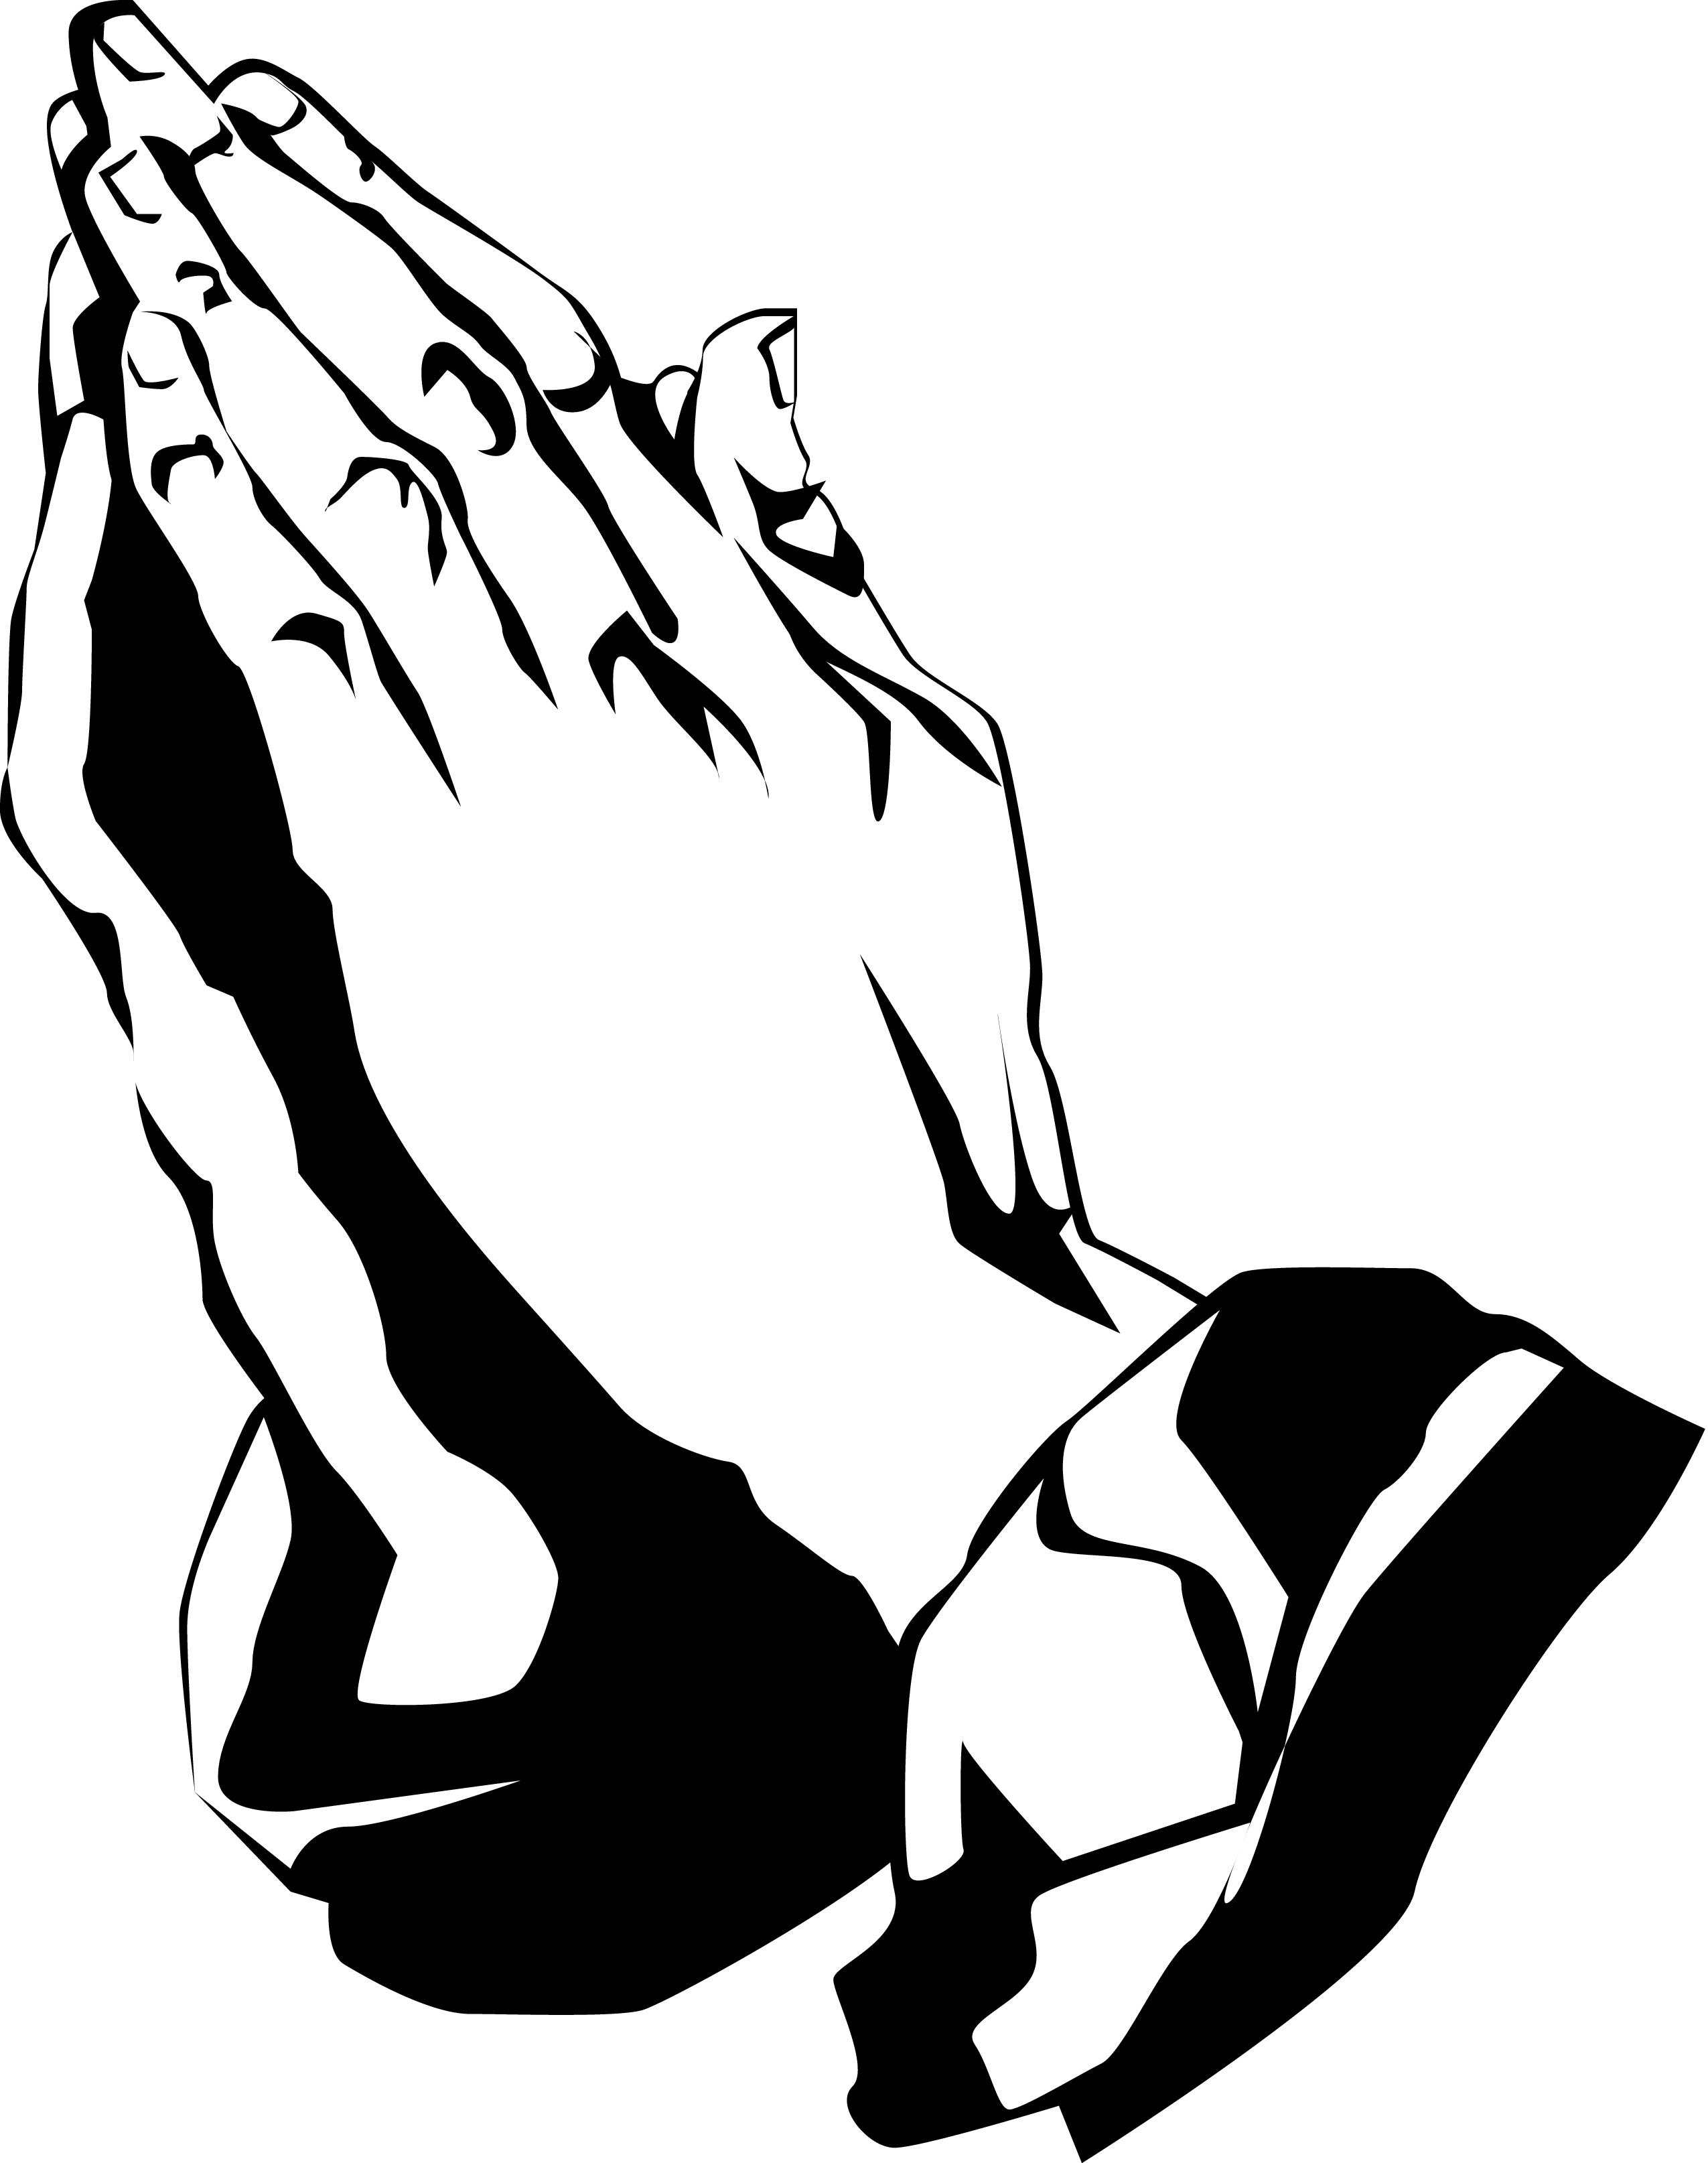 Praying Hands Clip Art & Praying Hands Clip Art Clip Art Images.